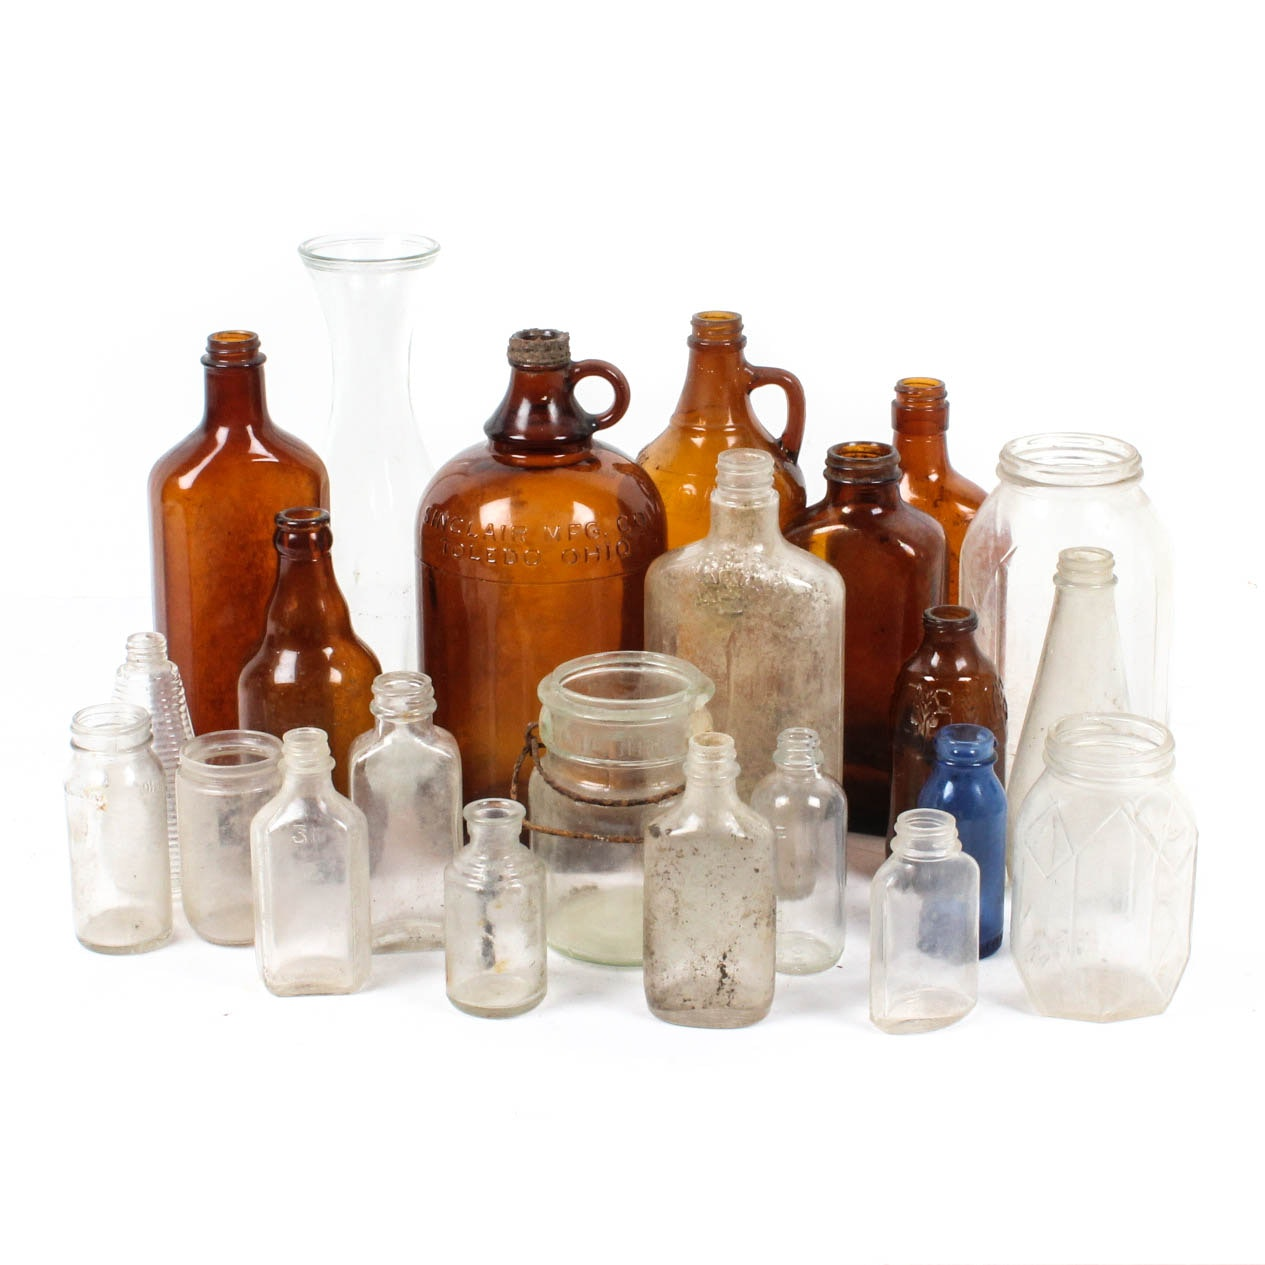 Twenty-Four Vintage and Antique Apothecary Bottles